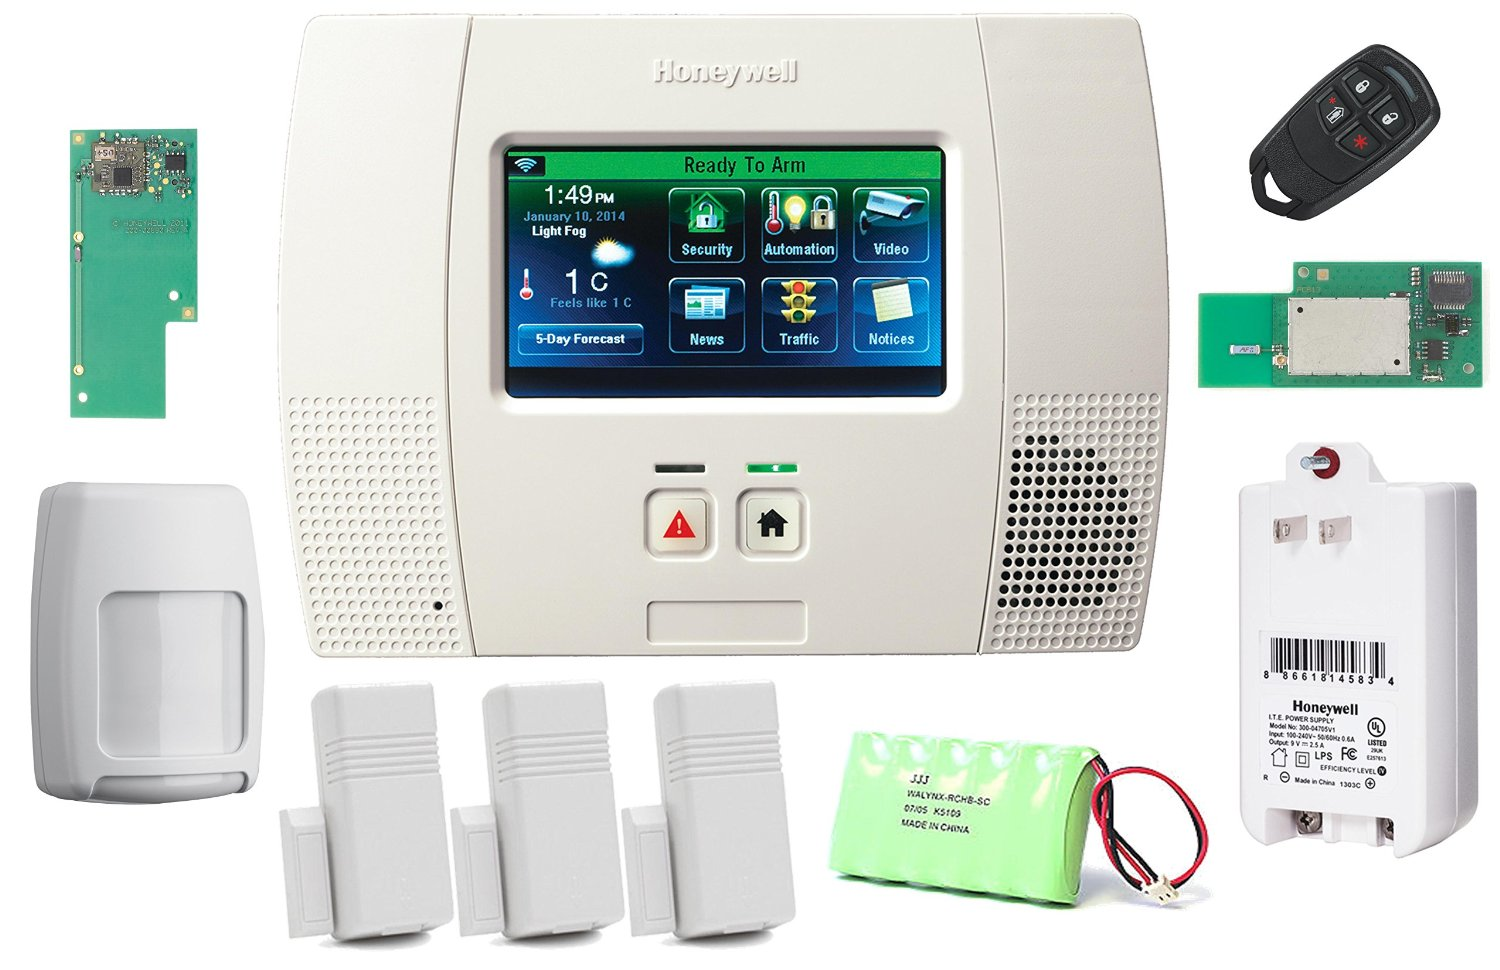 Honeywell DIY Security Systems